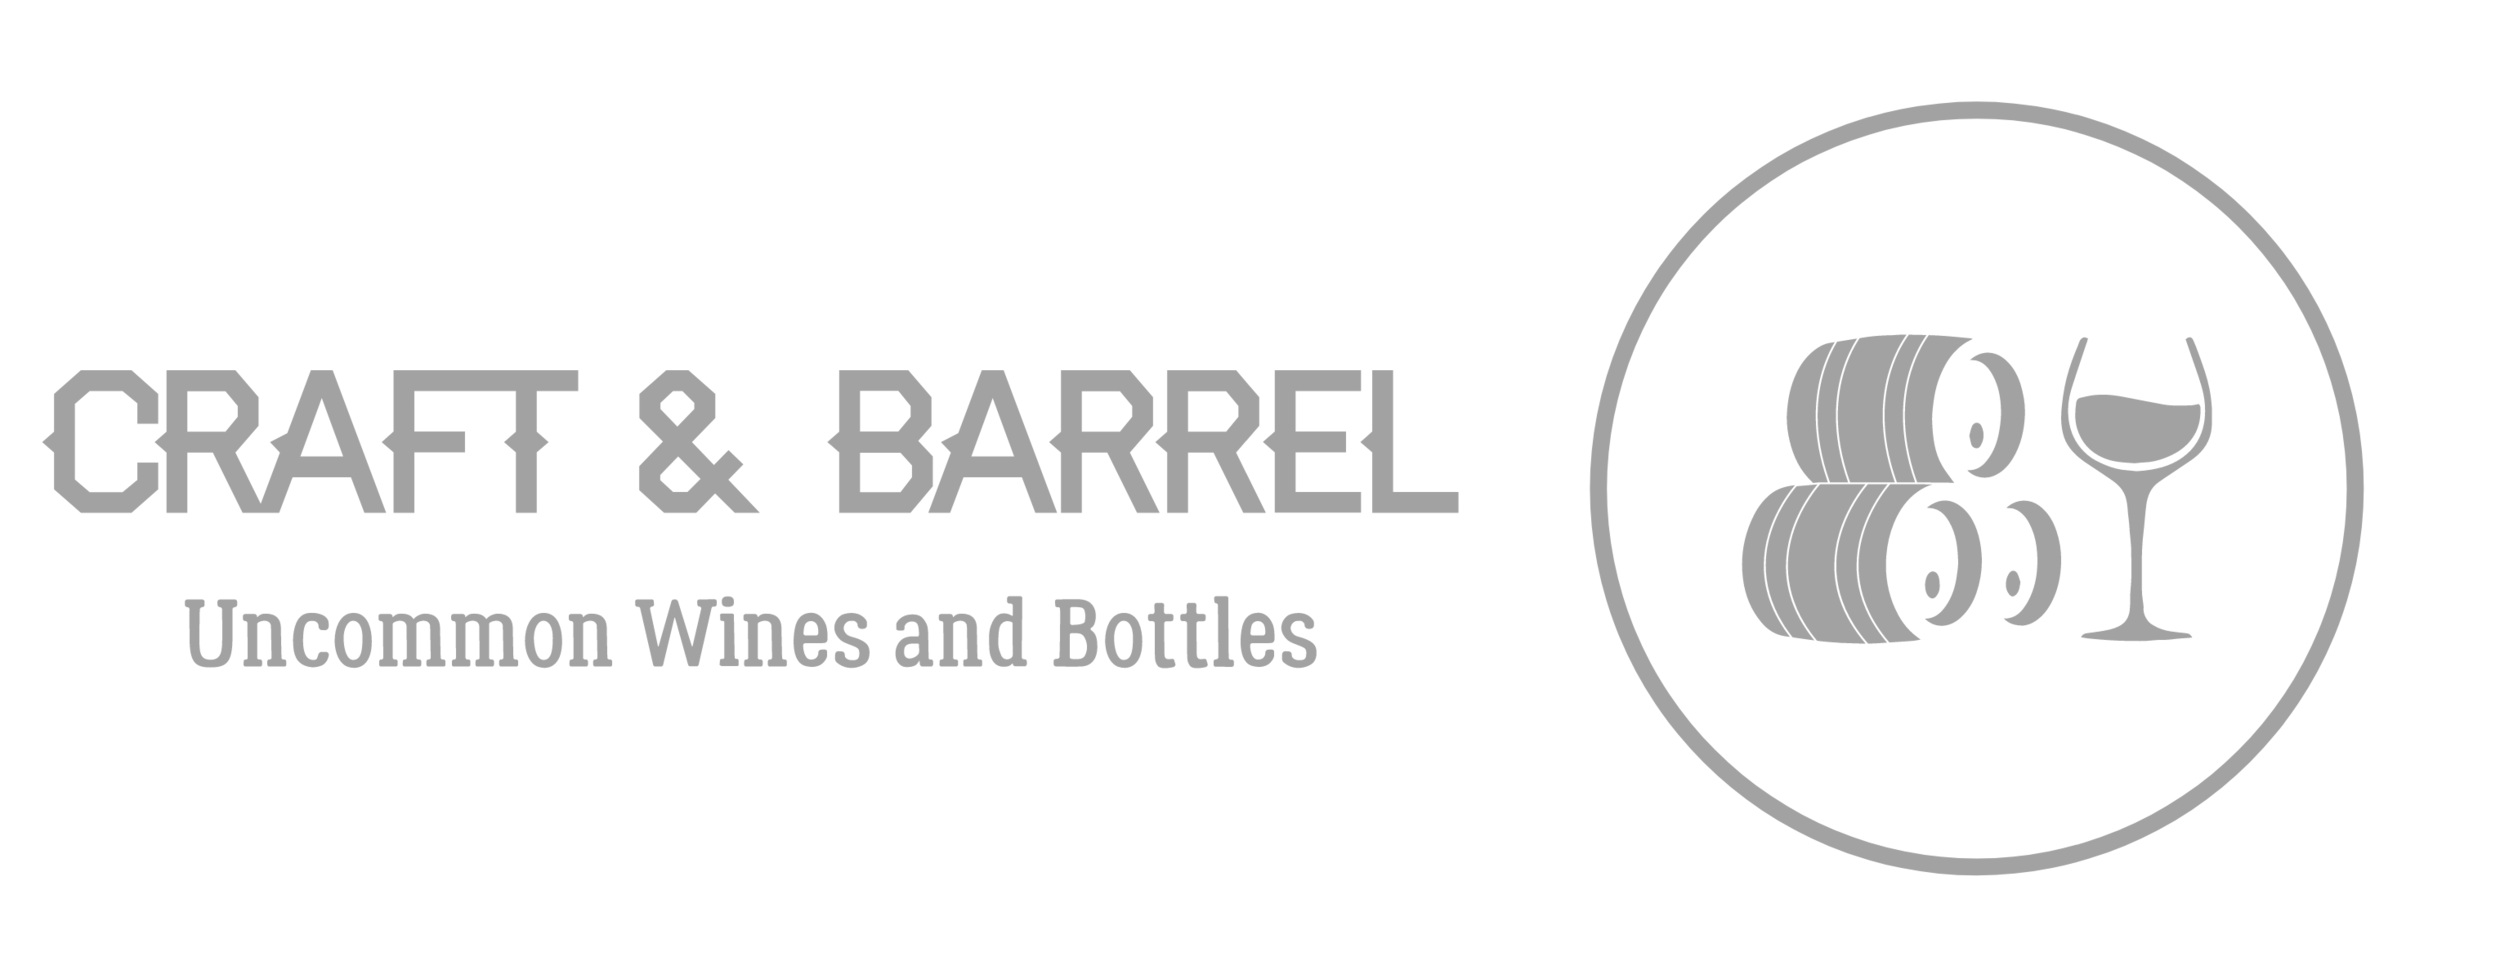 Craft & Barrel